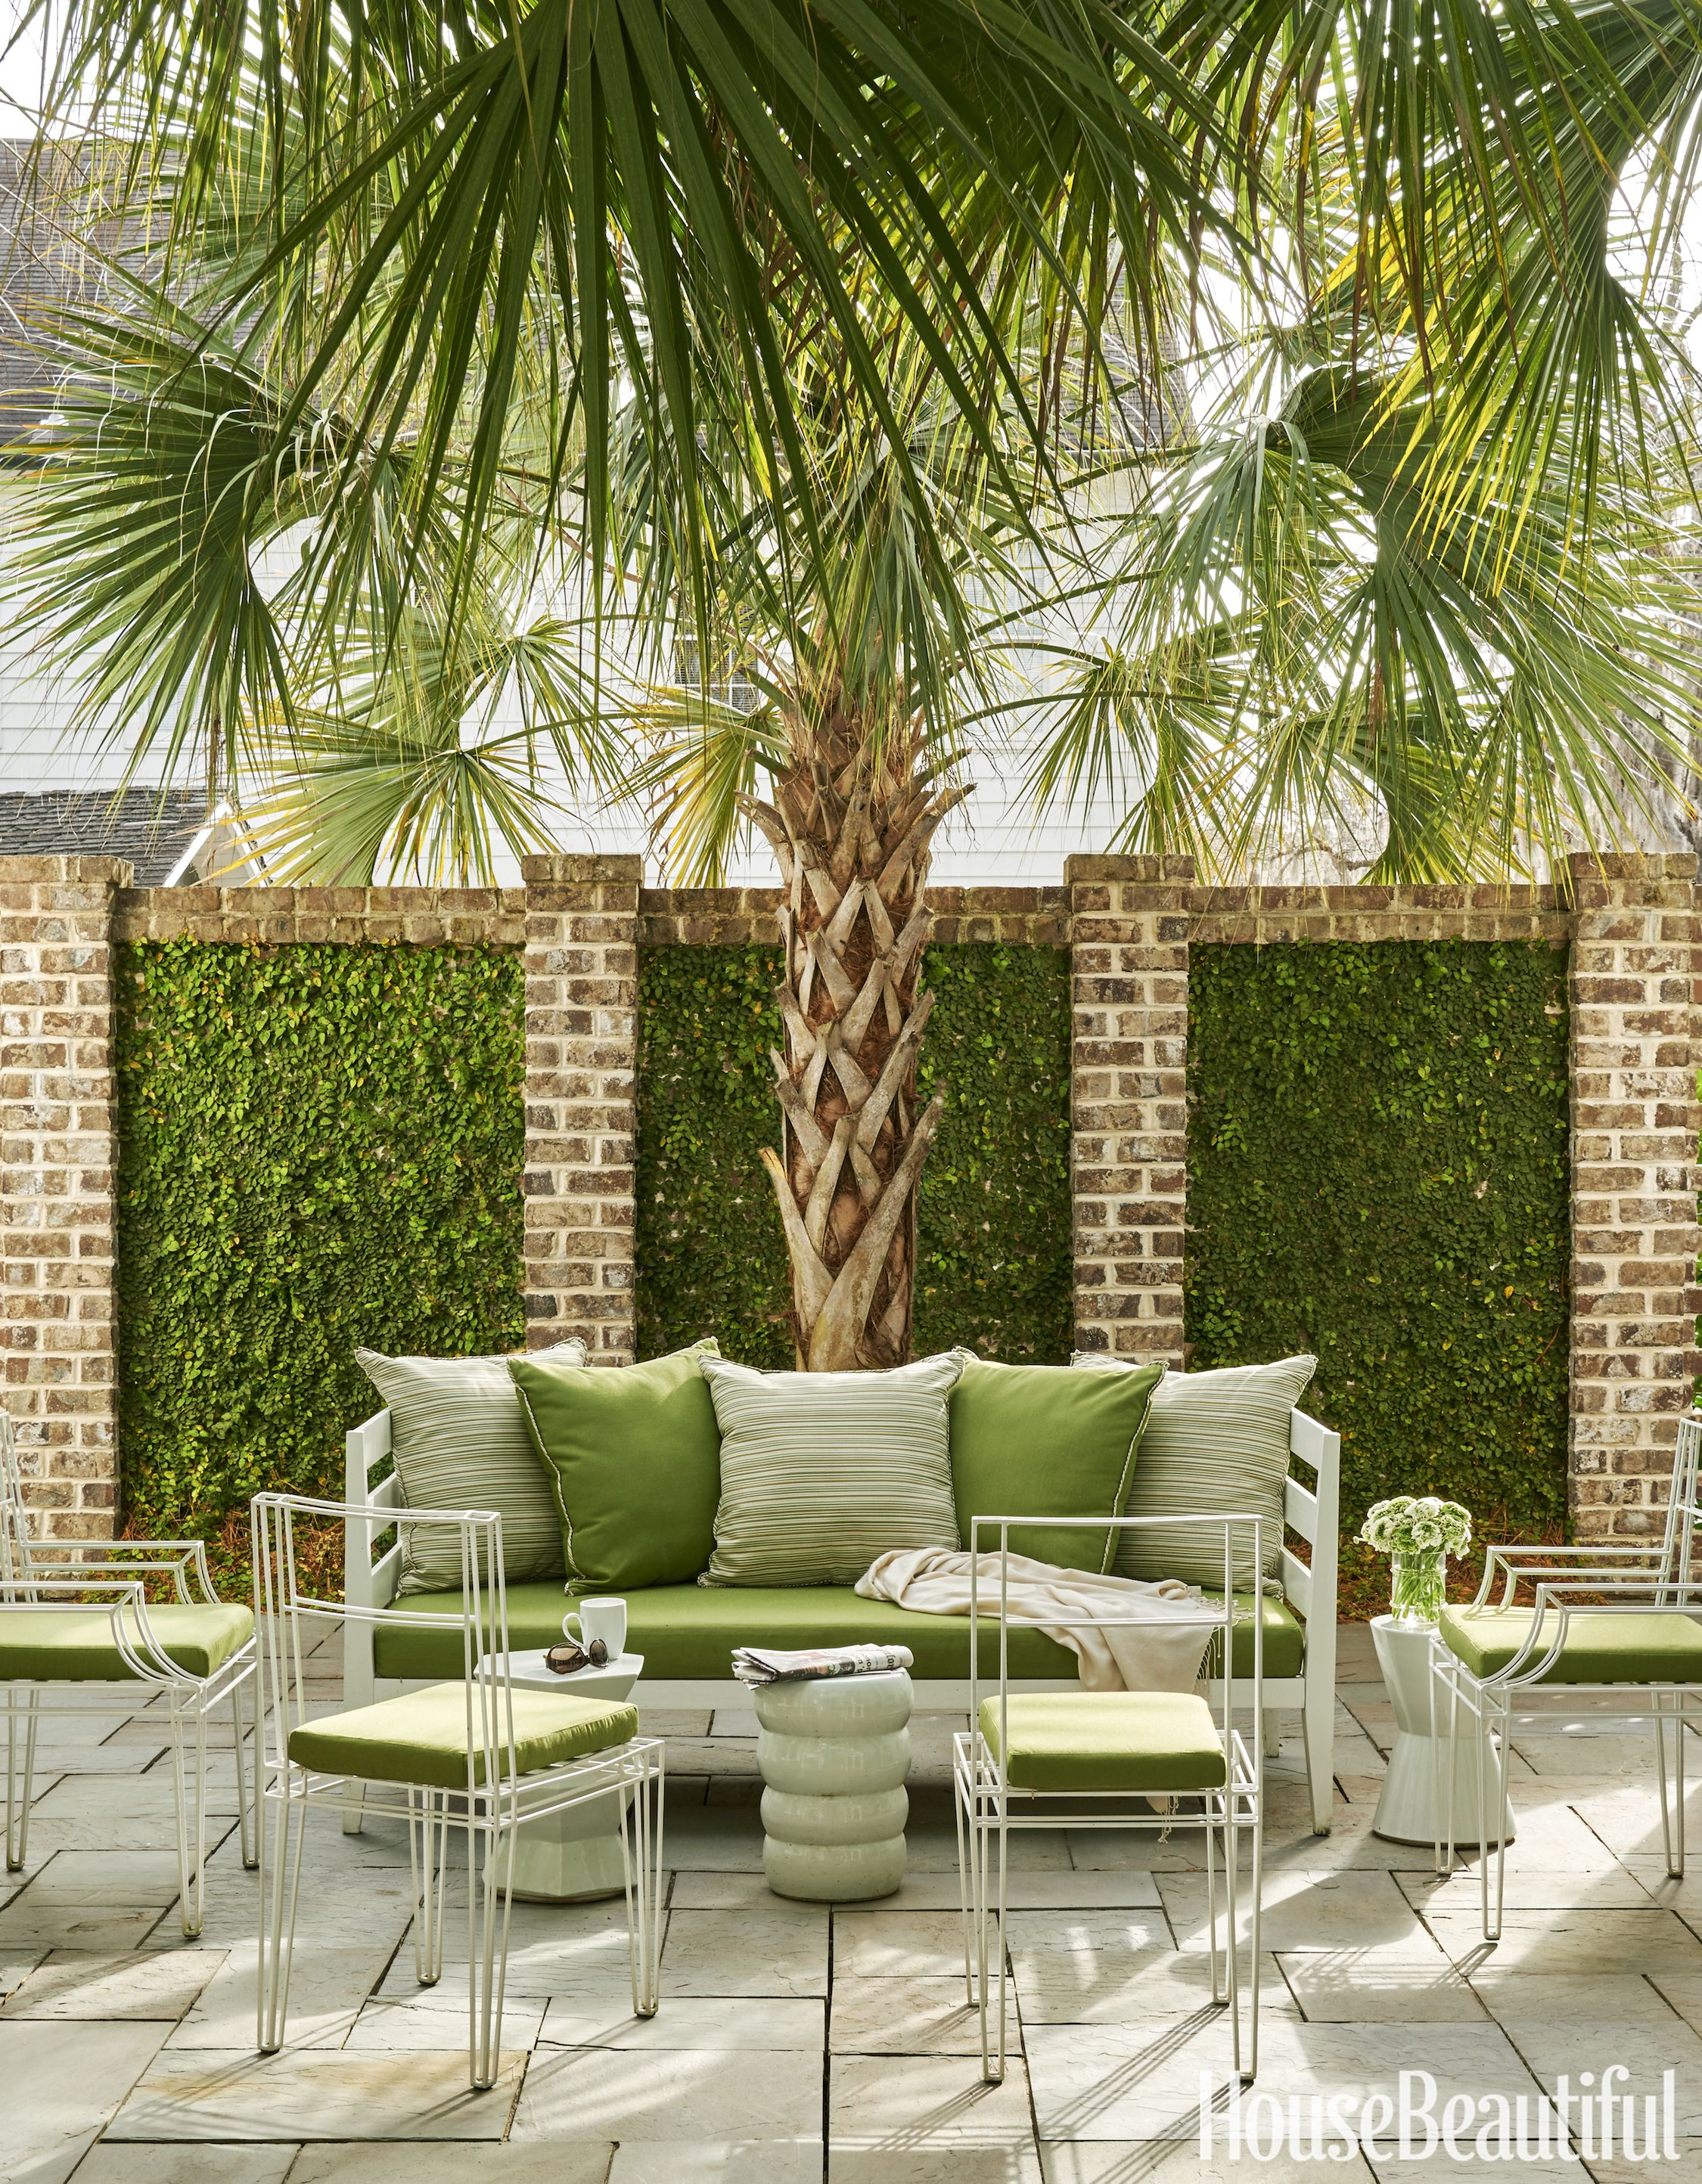 west elm patio furniture. Inside A Romantic Southern Home With The Dreamiest Courtyard West Elm Patio Furniture